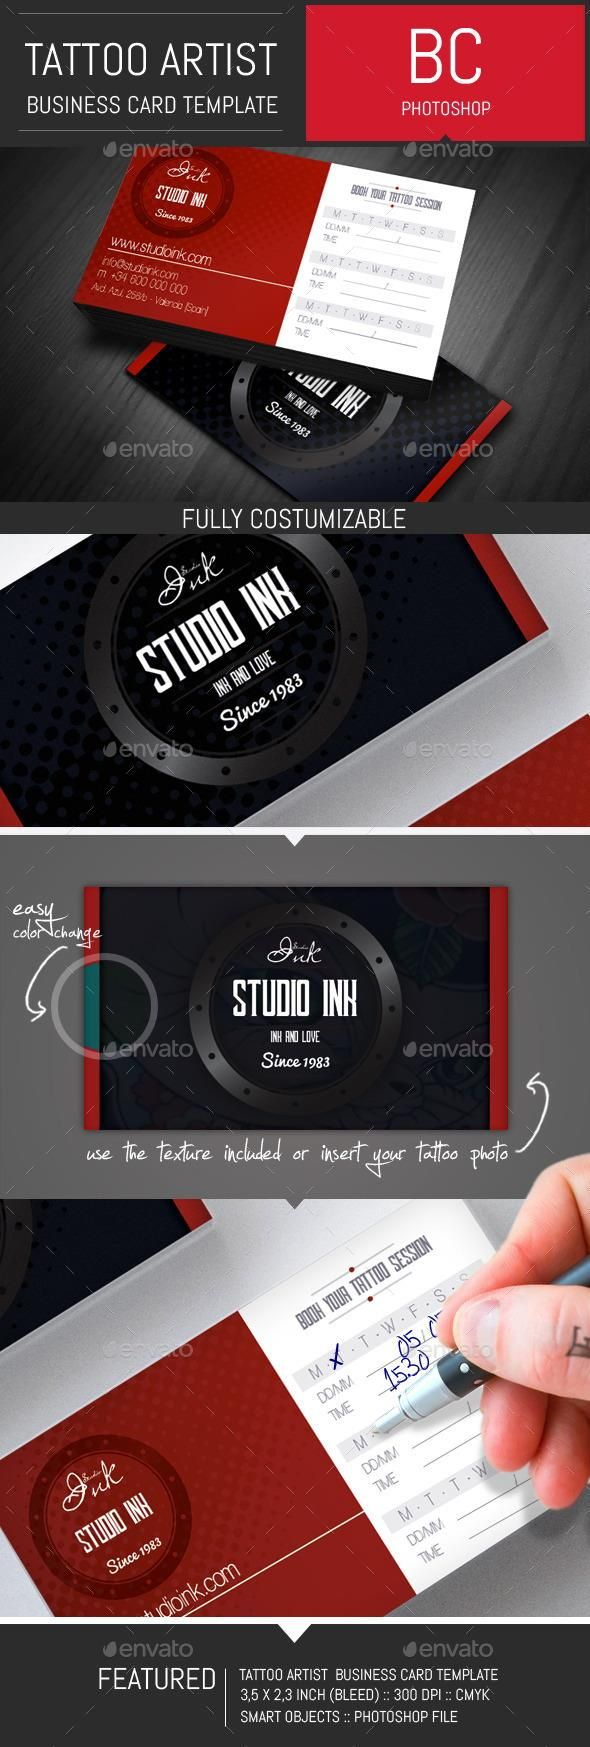 Tattoo artist business card template card templates business tattoo artist business card template magicingreecefo Image collections